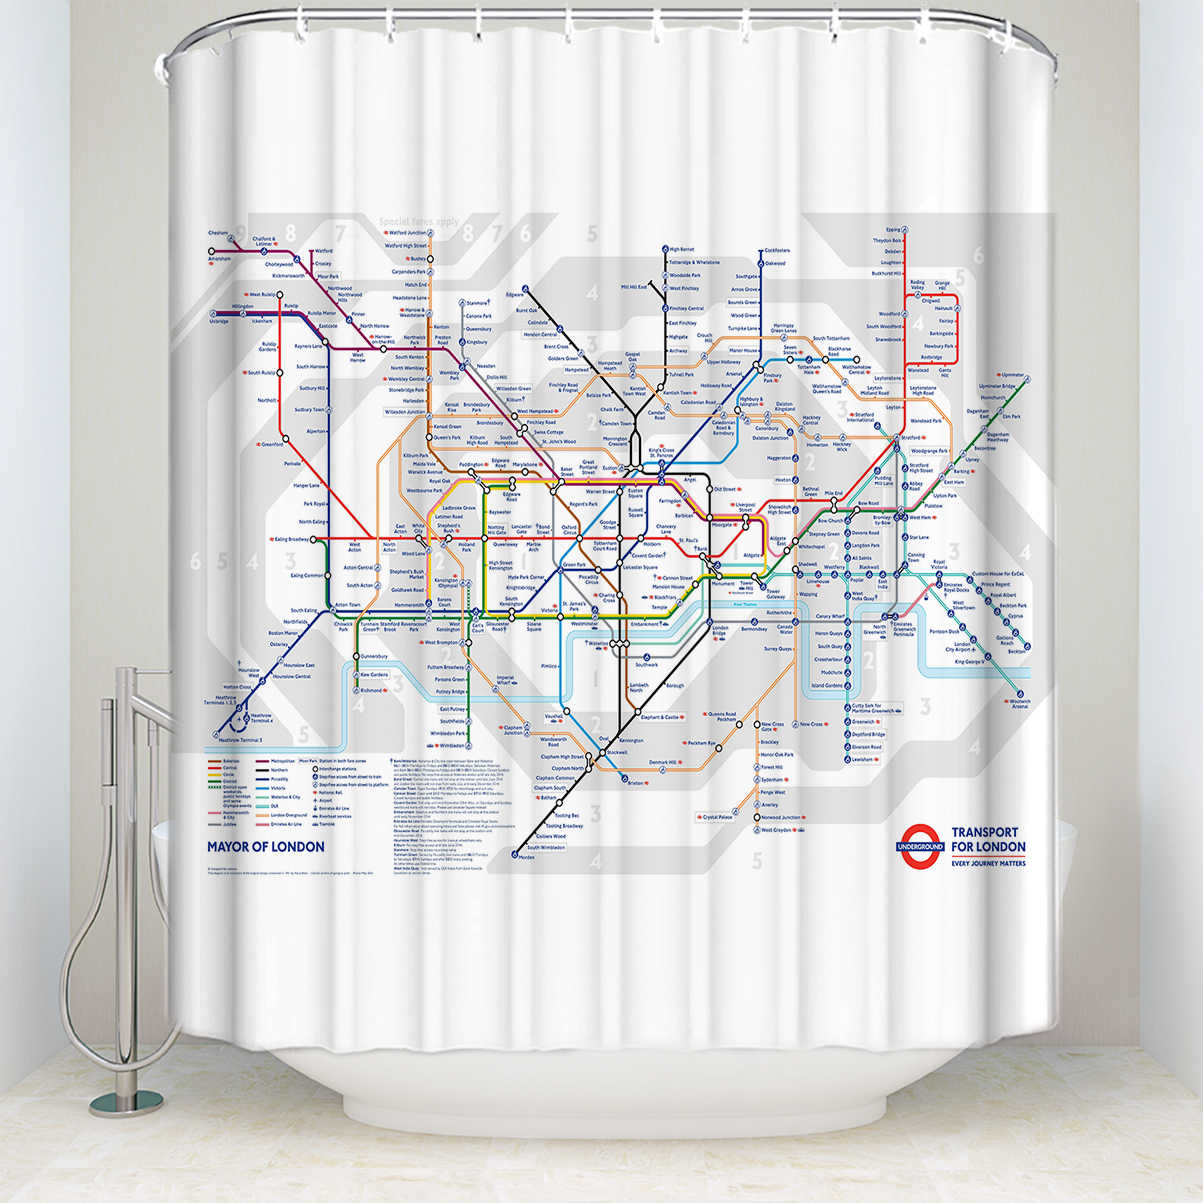 Charmhome London Subway Map Shower Curtain London Transit Polyester Fabric Waterproof White Bath Curtain Hooks Included